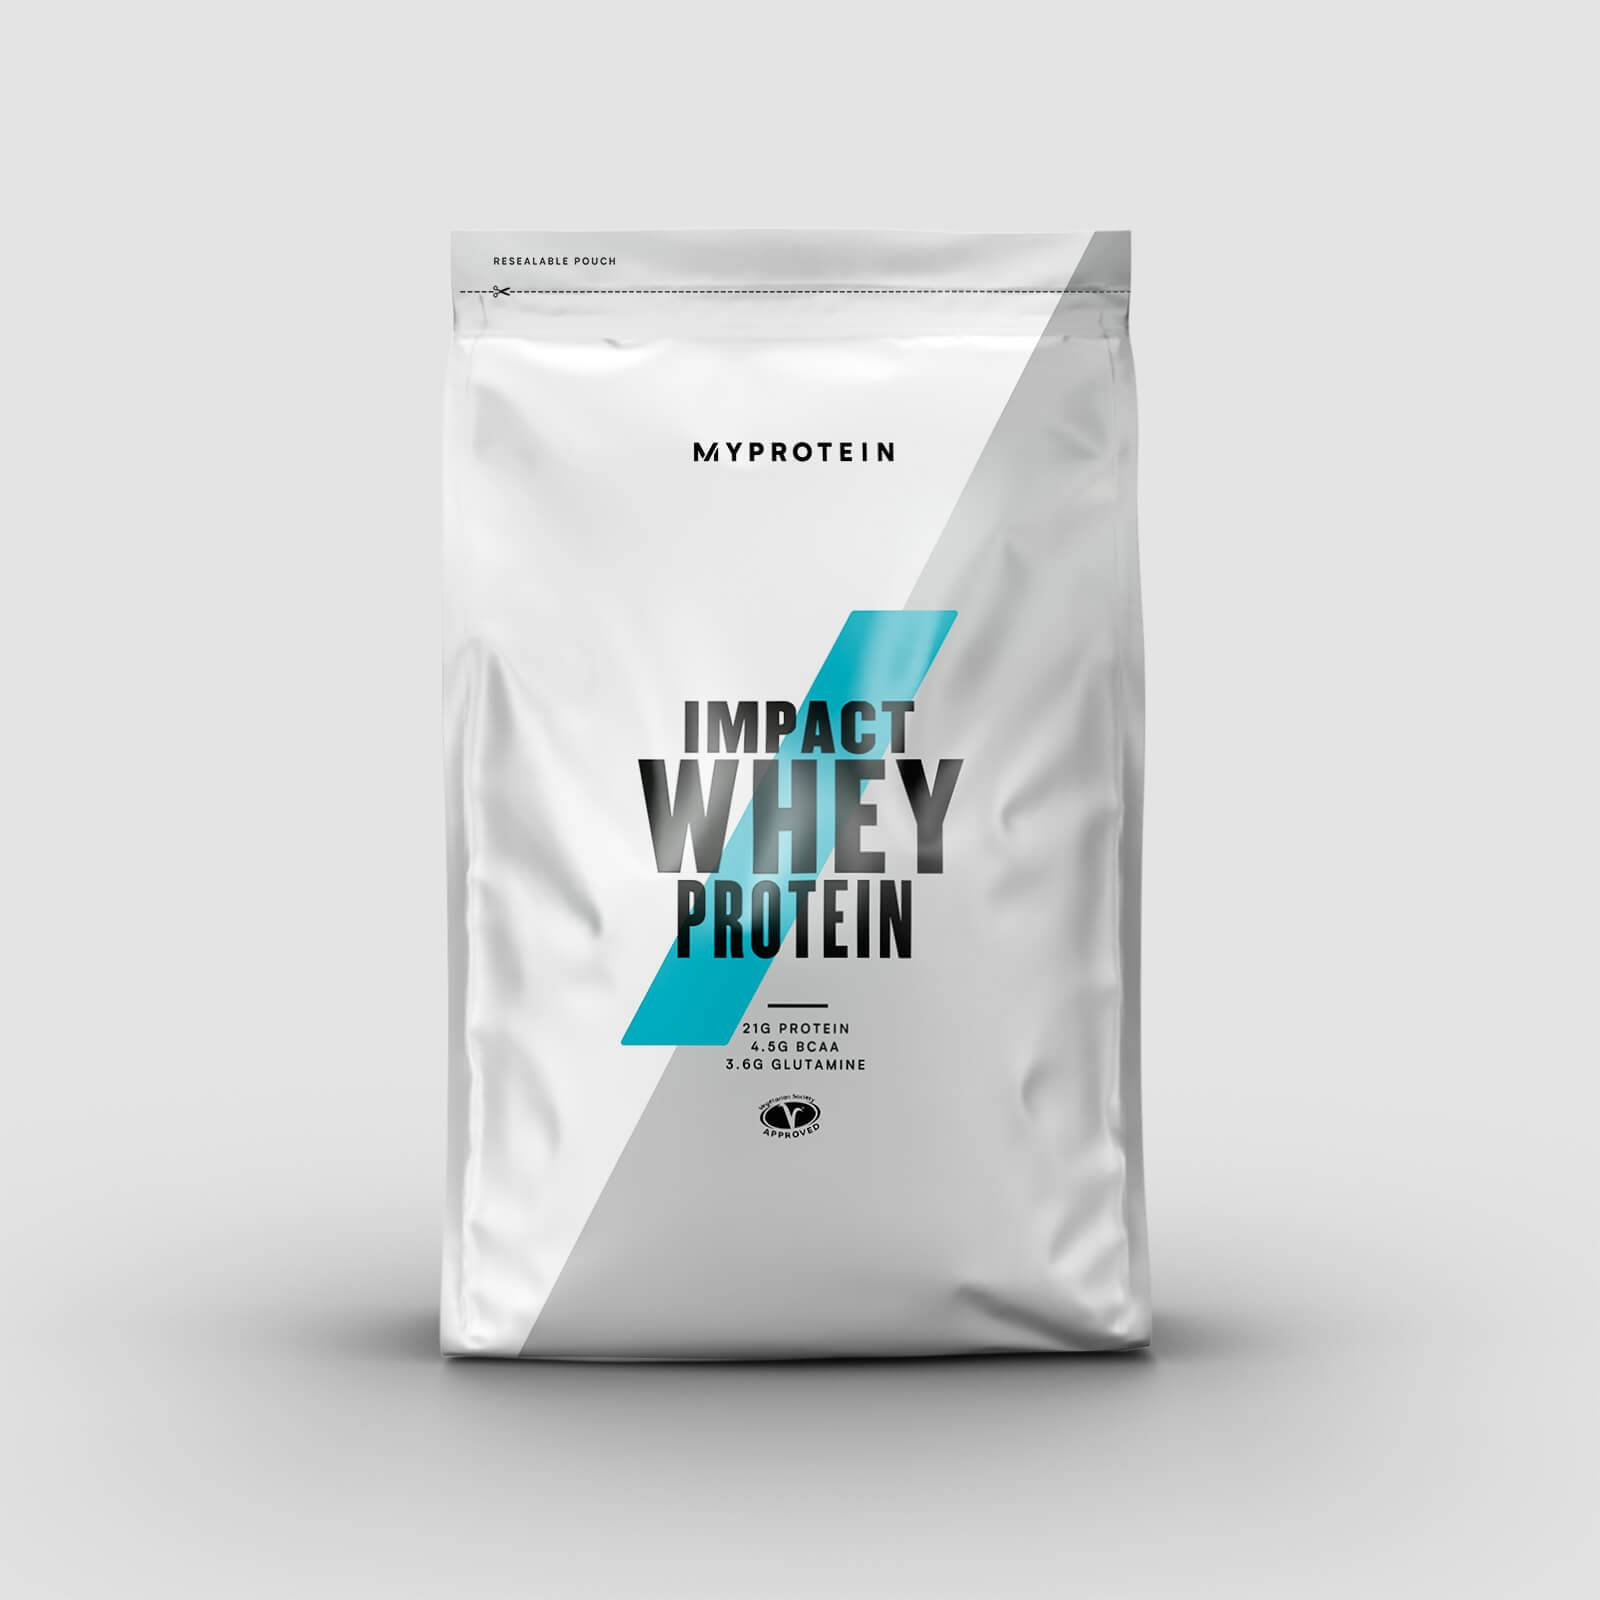 Myprotein Impact Whey Protein - 250g - Rocky Road - New and Improved